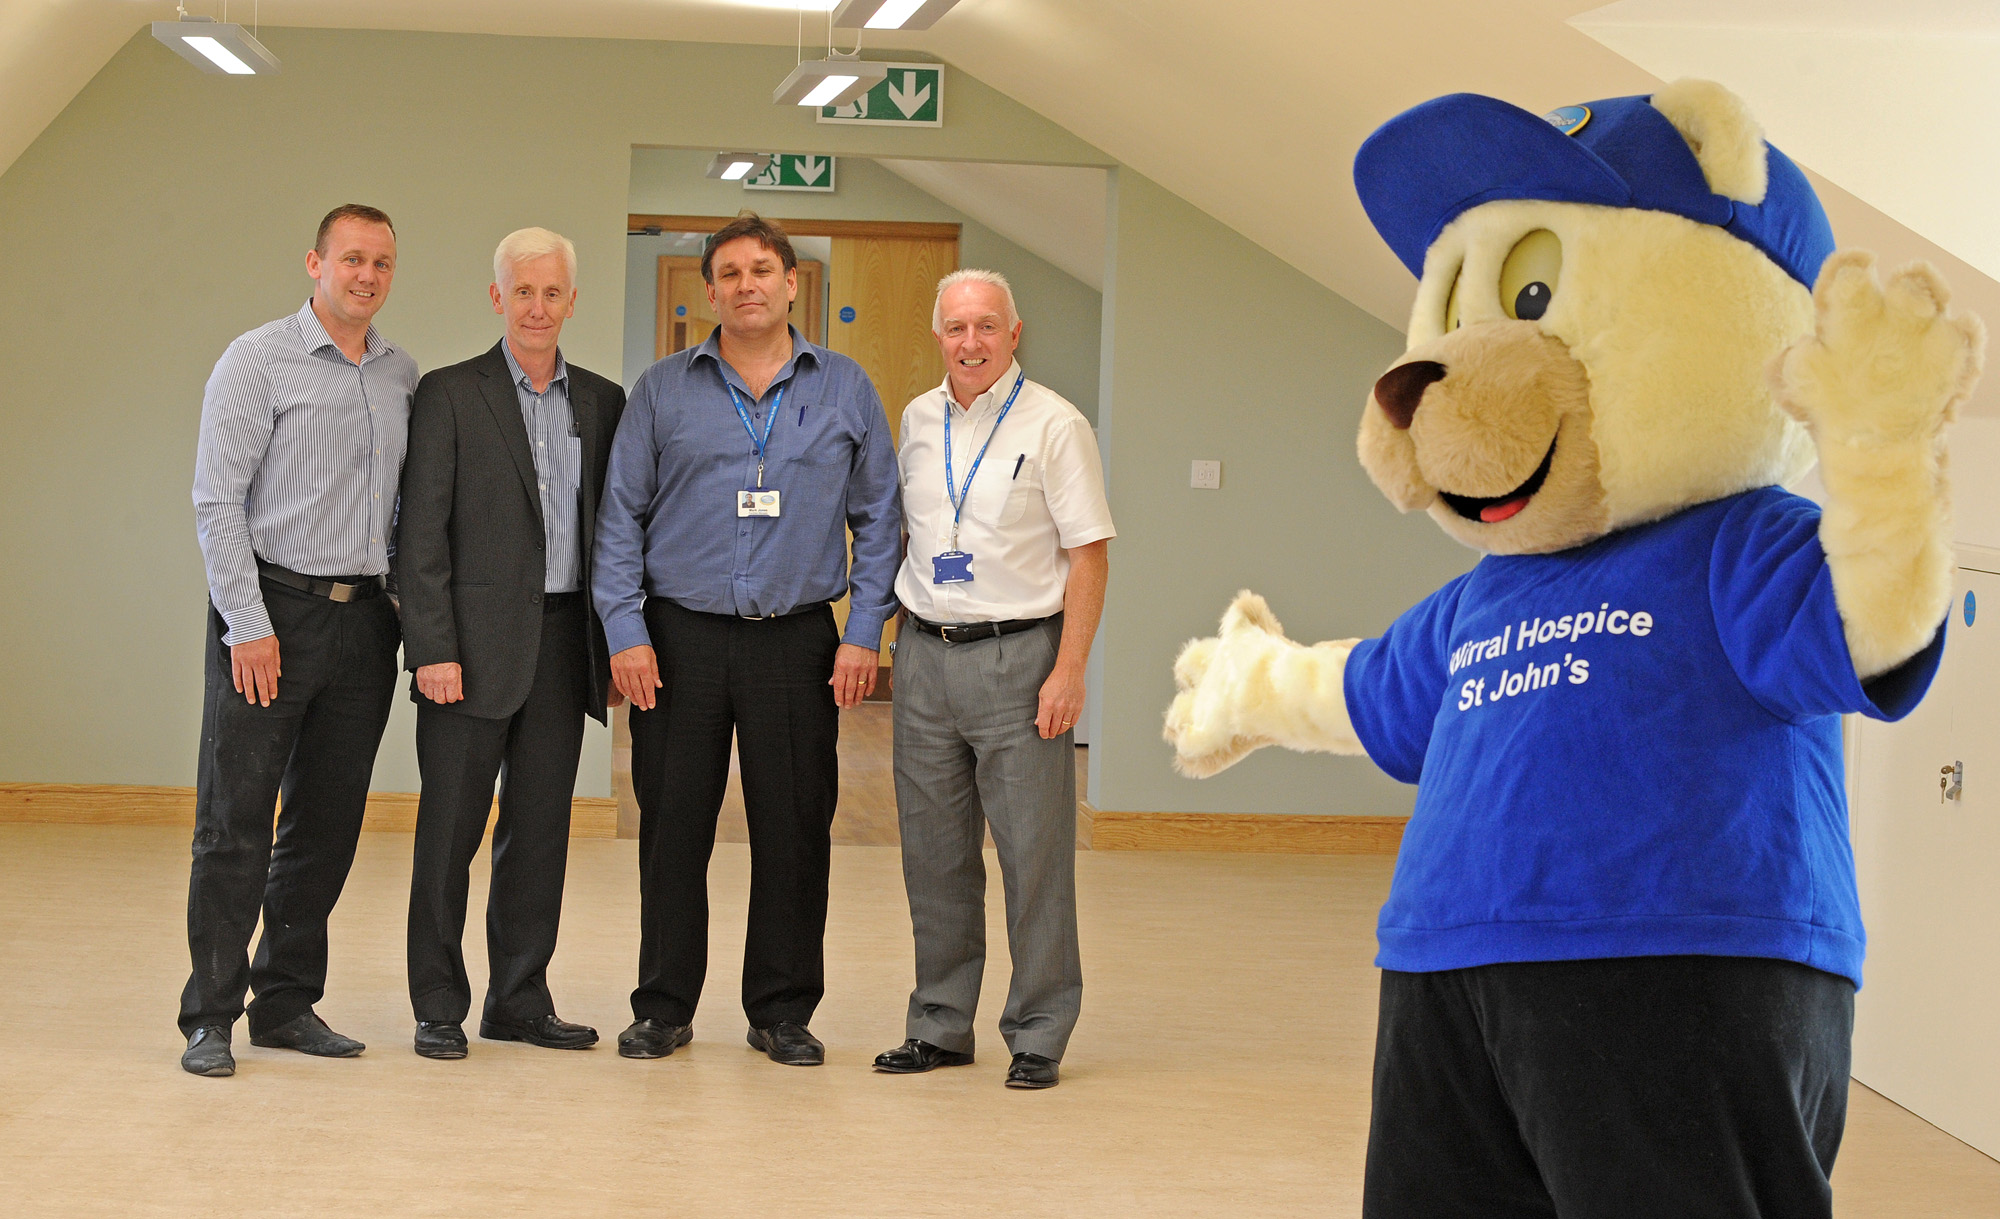 Danny Ambrose, John Nozedar, Mark Jones and Paul Rushbrook with hospice mascot John Bear in the centre today. Picture: Paul Heaps